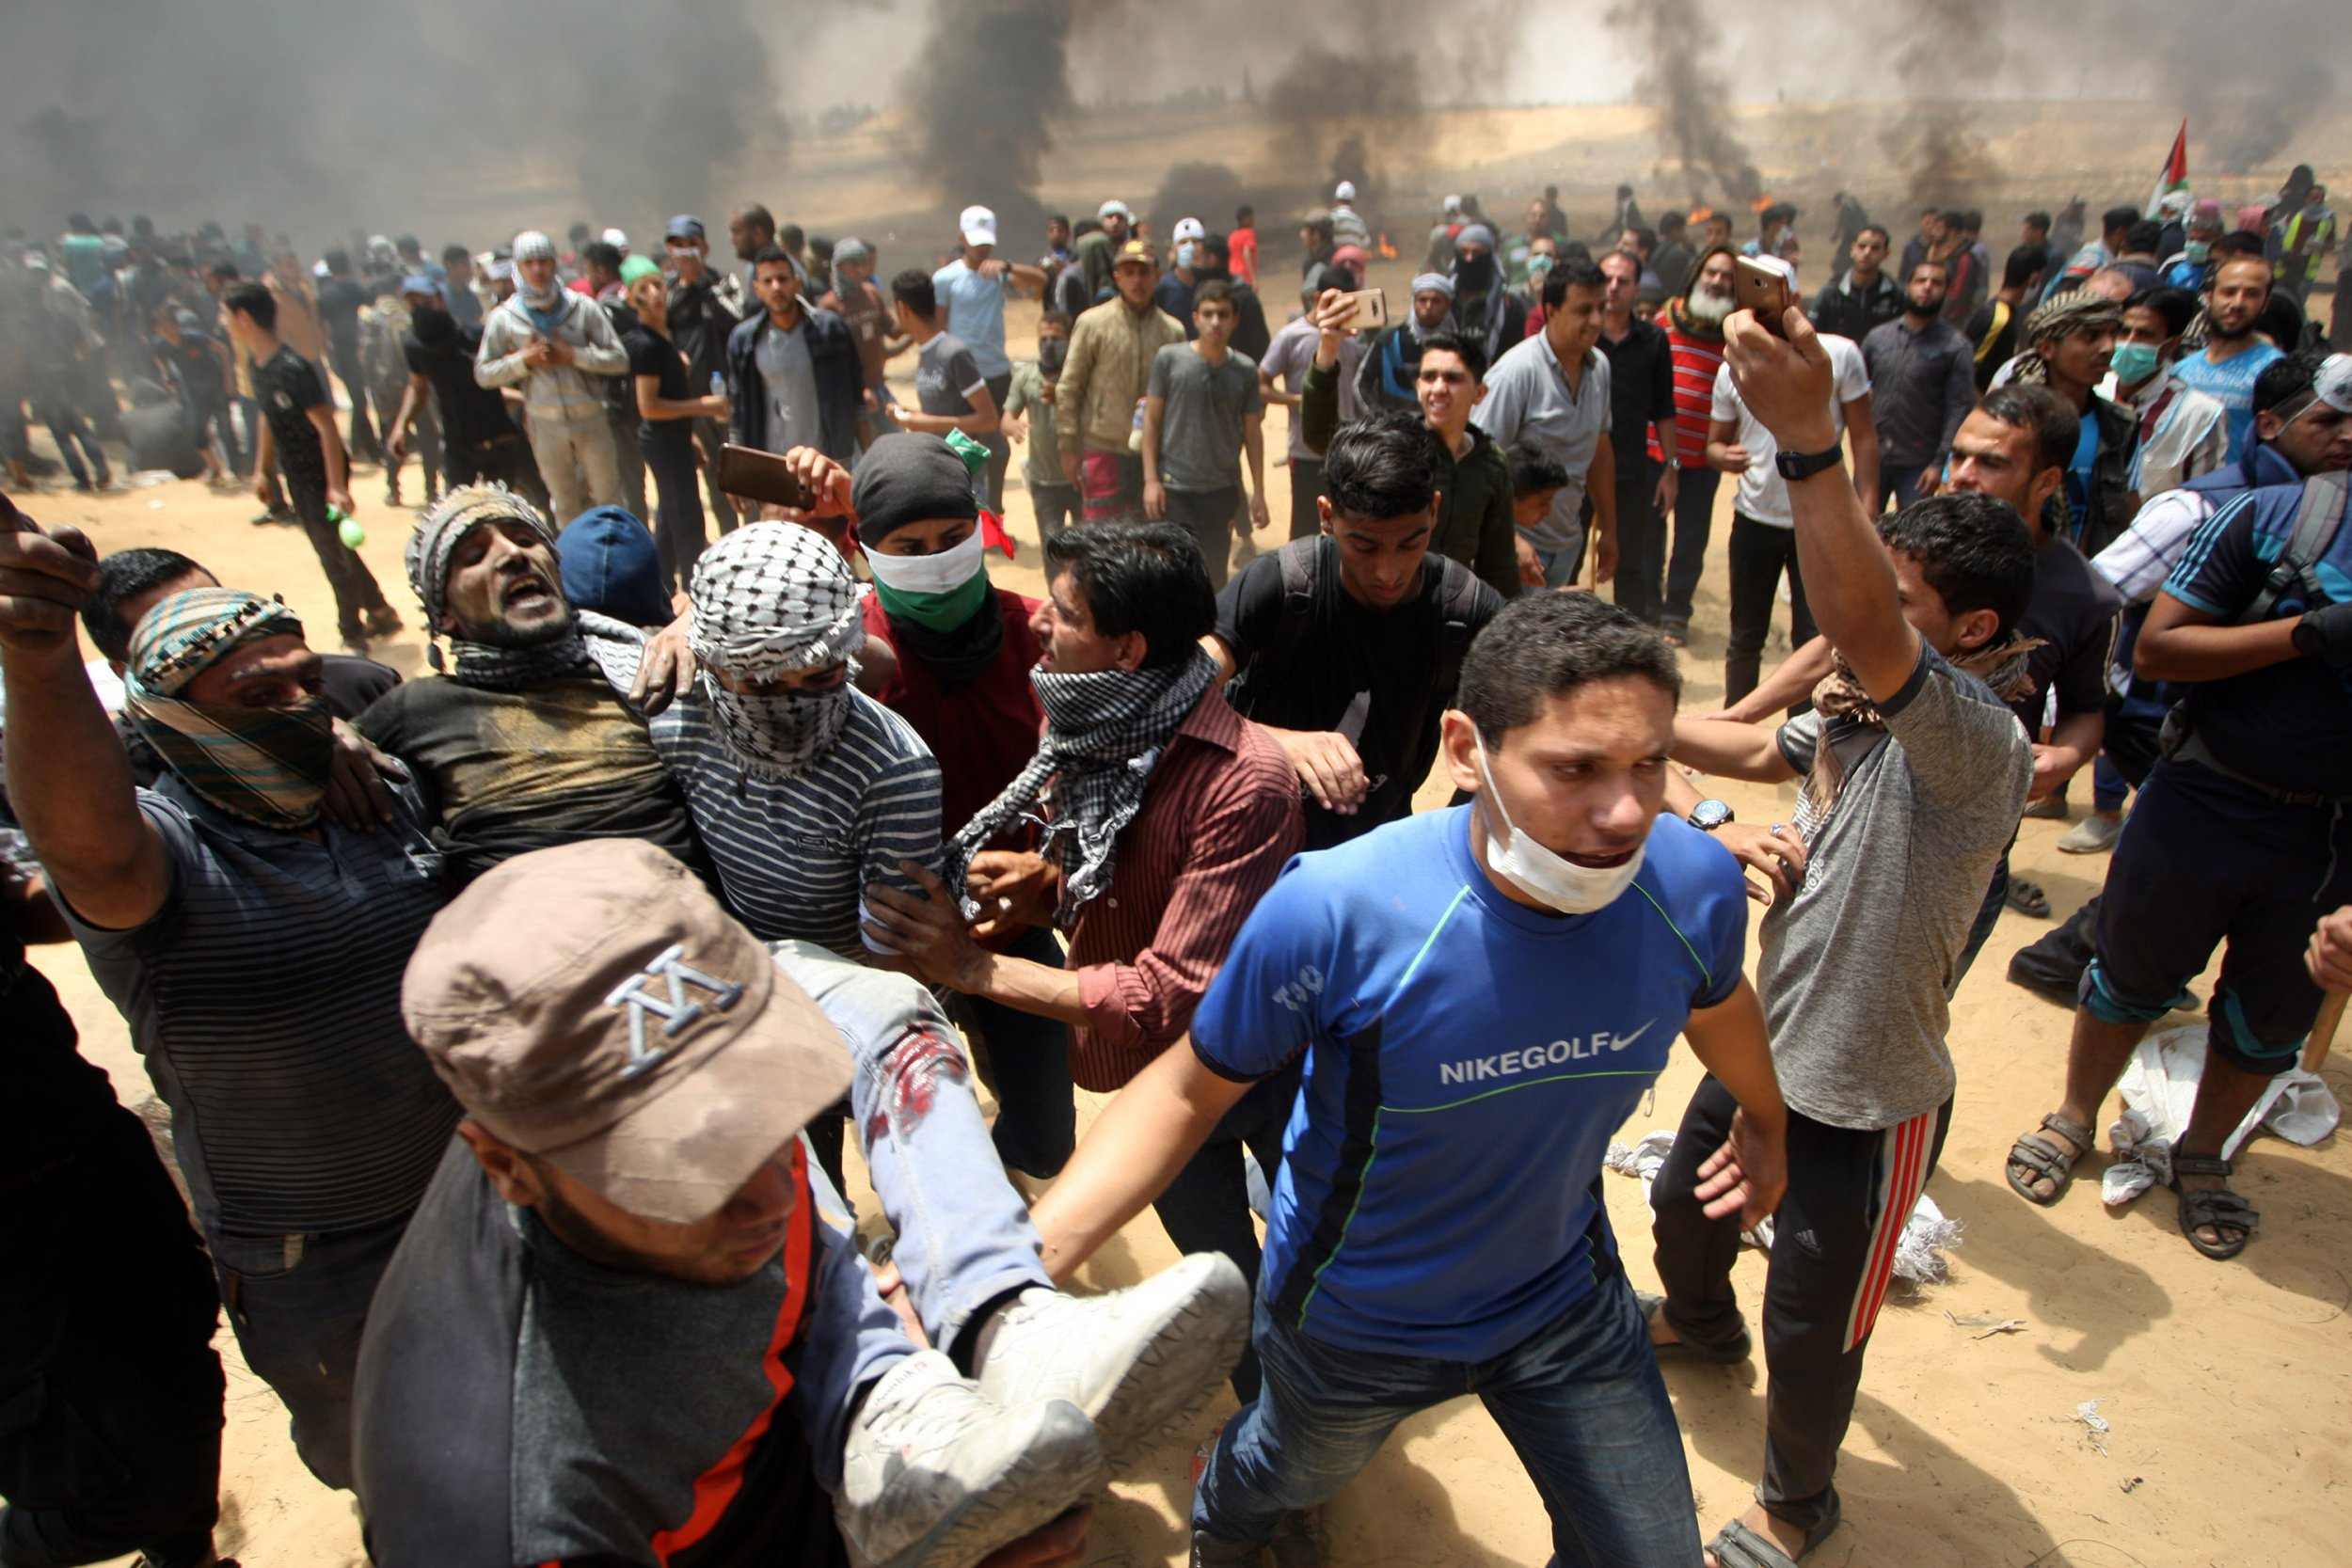 Palestinians carry an injured protestors during demonstration to mark the 70th anniversary of Nakba and against United States' plans today to relocate the U.S. Embassy from Tel Aviv to Jerusalem, near Gaza-Israel border in Rafah southern Gaza on May 14, 2018. More than 40 Palestinians were killed. Nakba refers to the period when Palestinians fled or were driven out of their homes when present-day Israel was formed in 1948. Photo by Ismael Mohamad/UPIPHOTOGRAPH BY UPI / Barcroft Images